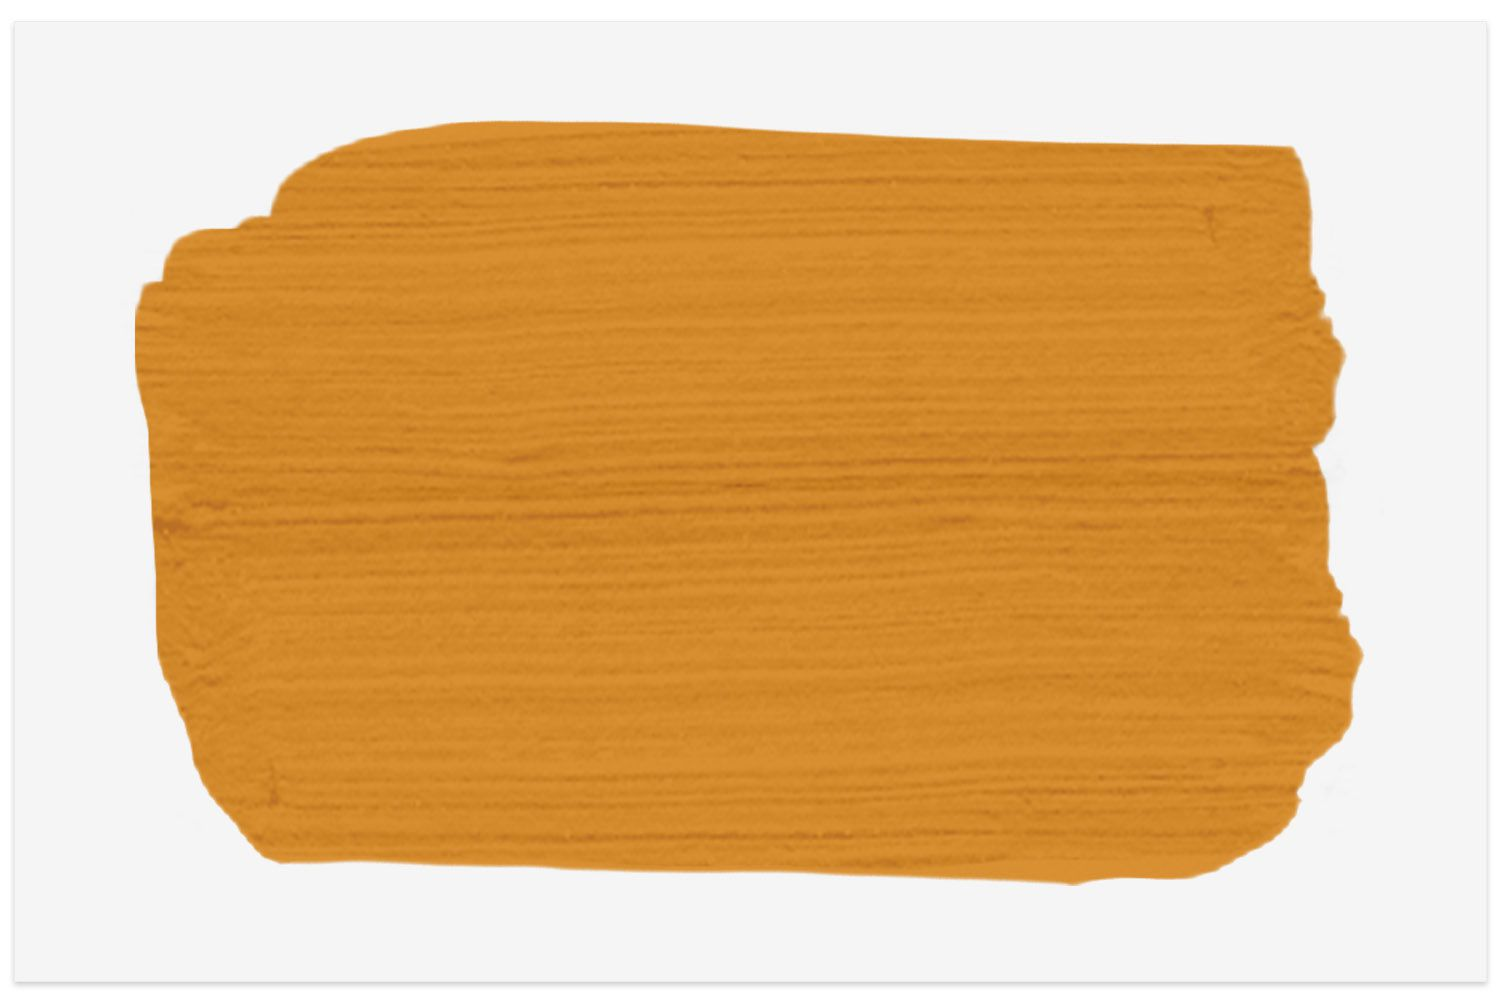 Curry paint swatch from Sherwin Williams